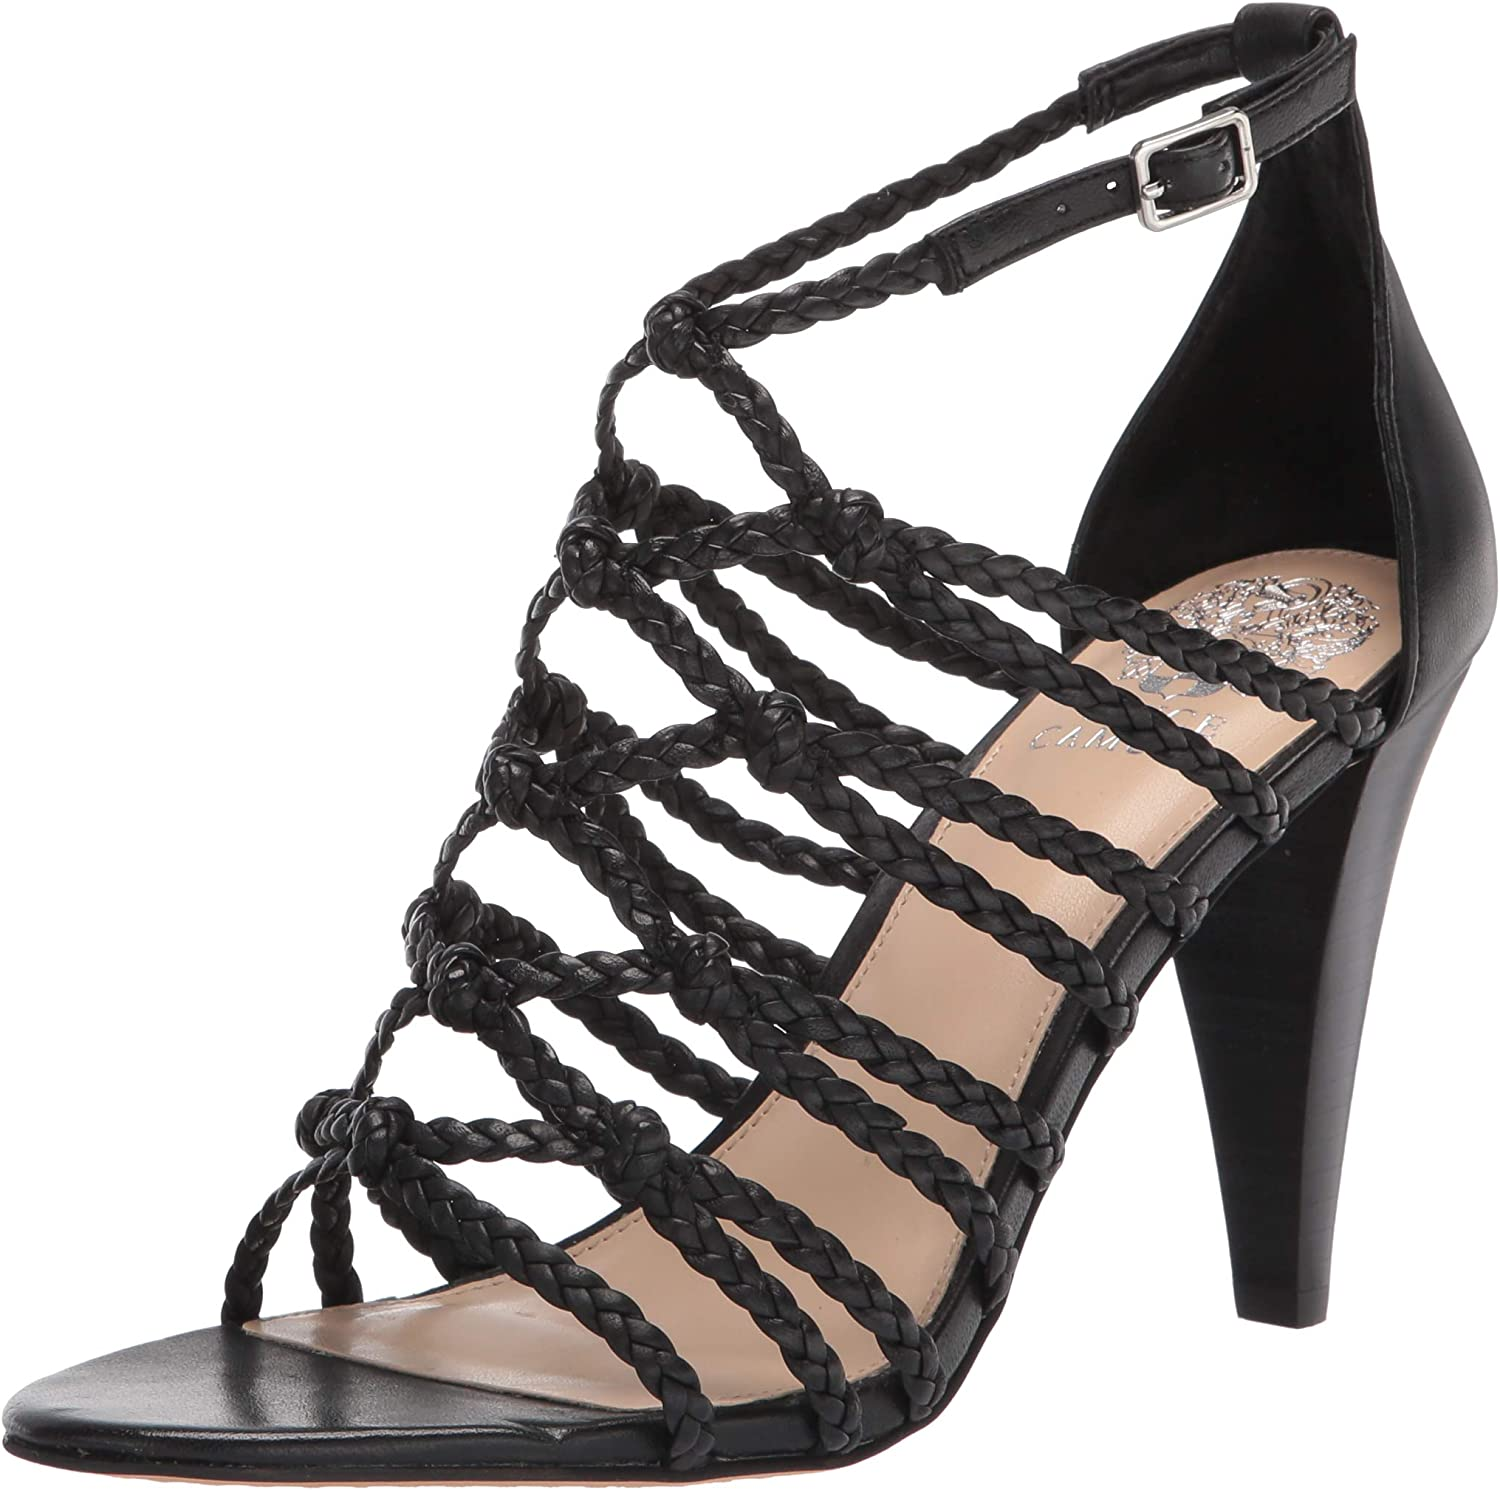 Vince Camuto Safety and trust Women's Sandal Amellis Year-end annual account Heeled